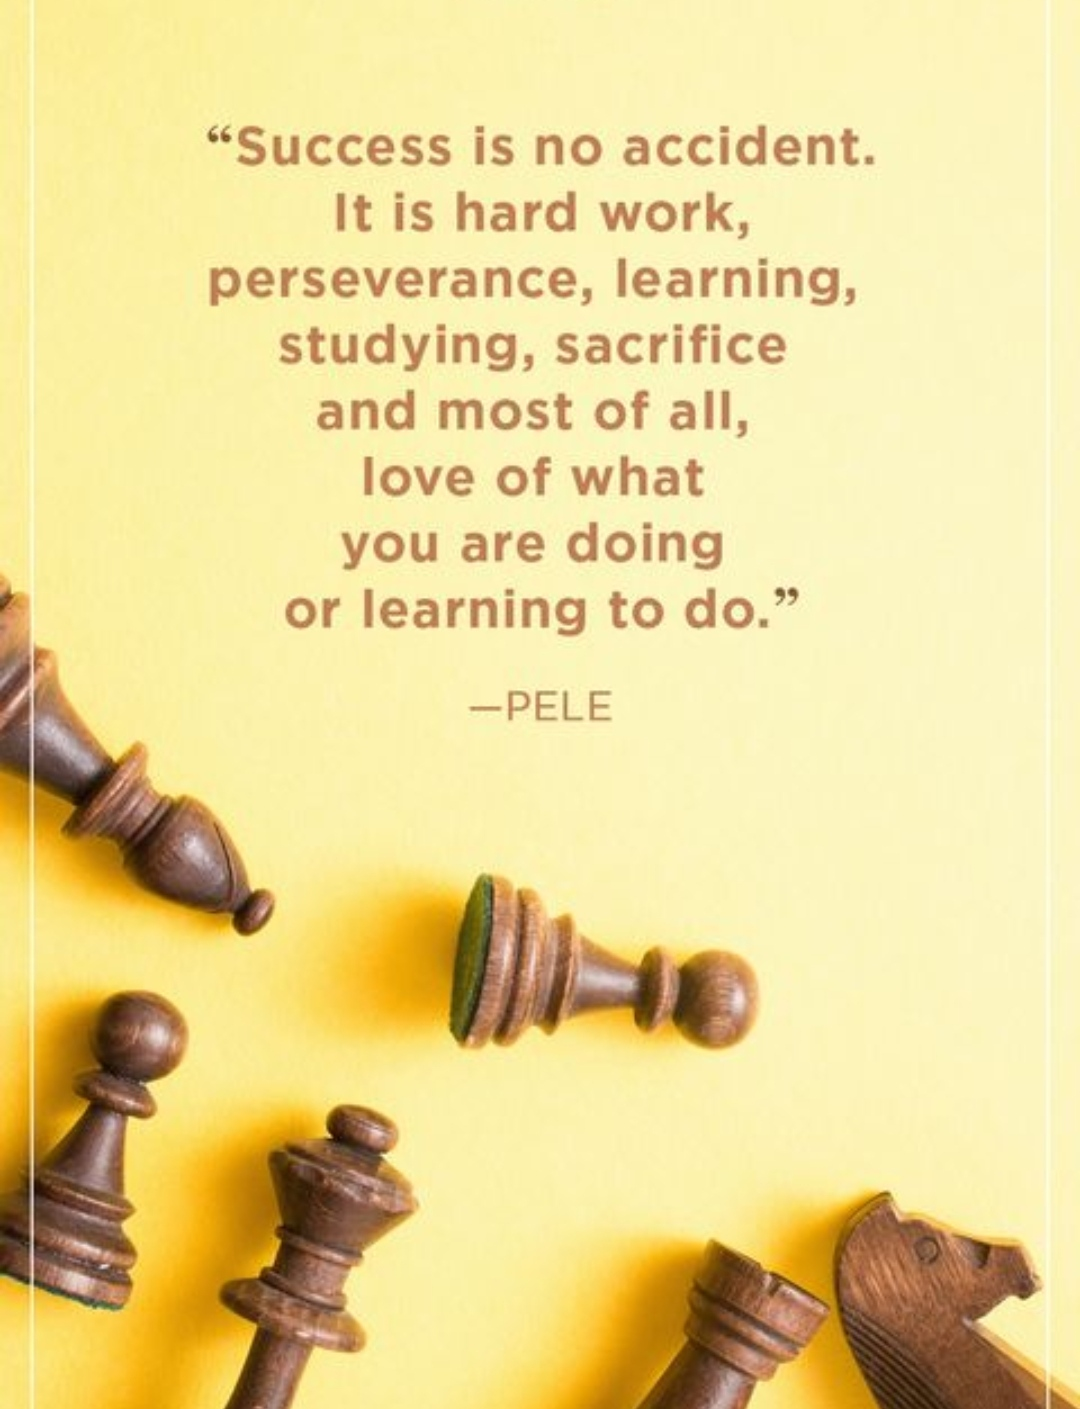 """ Success is no accident. It is hard work, learning, studying, sacrifice and most of all, love of what you are doing or learning to do. "" ~ Pele(formally Edson Arantes do Nascimento) [1080 x 1409]"